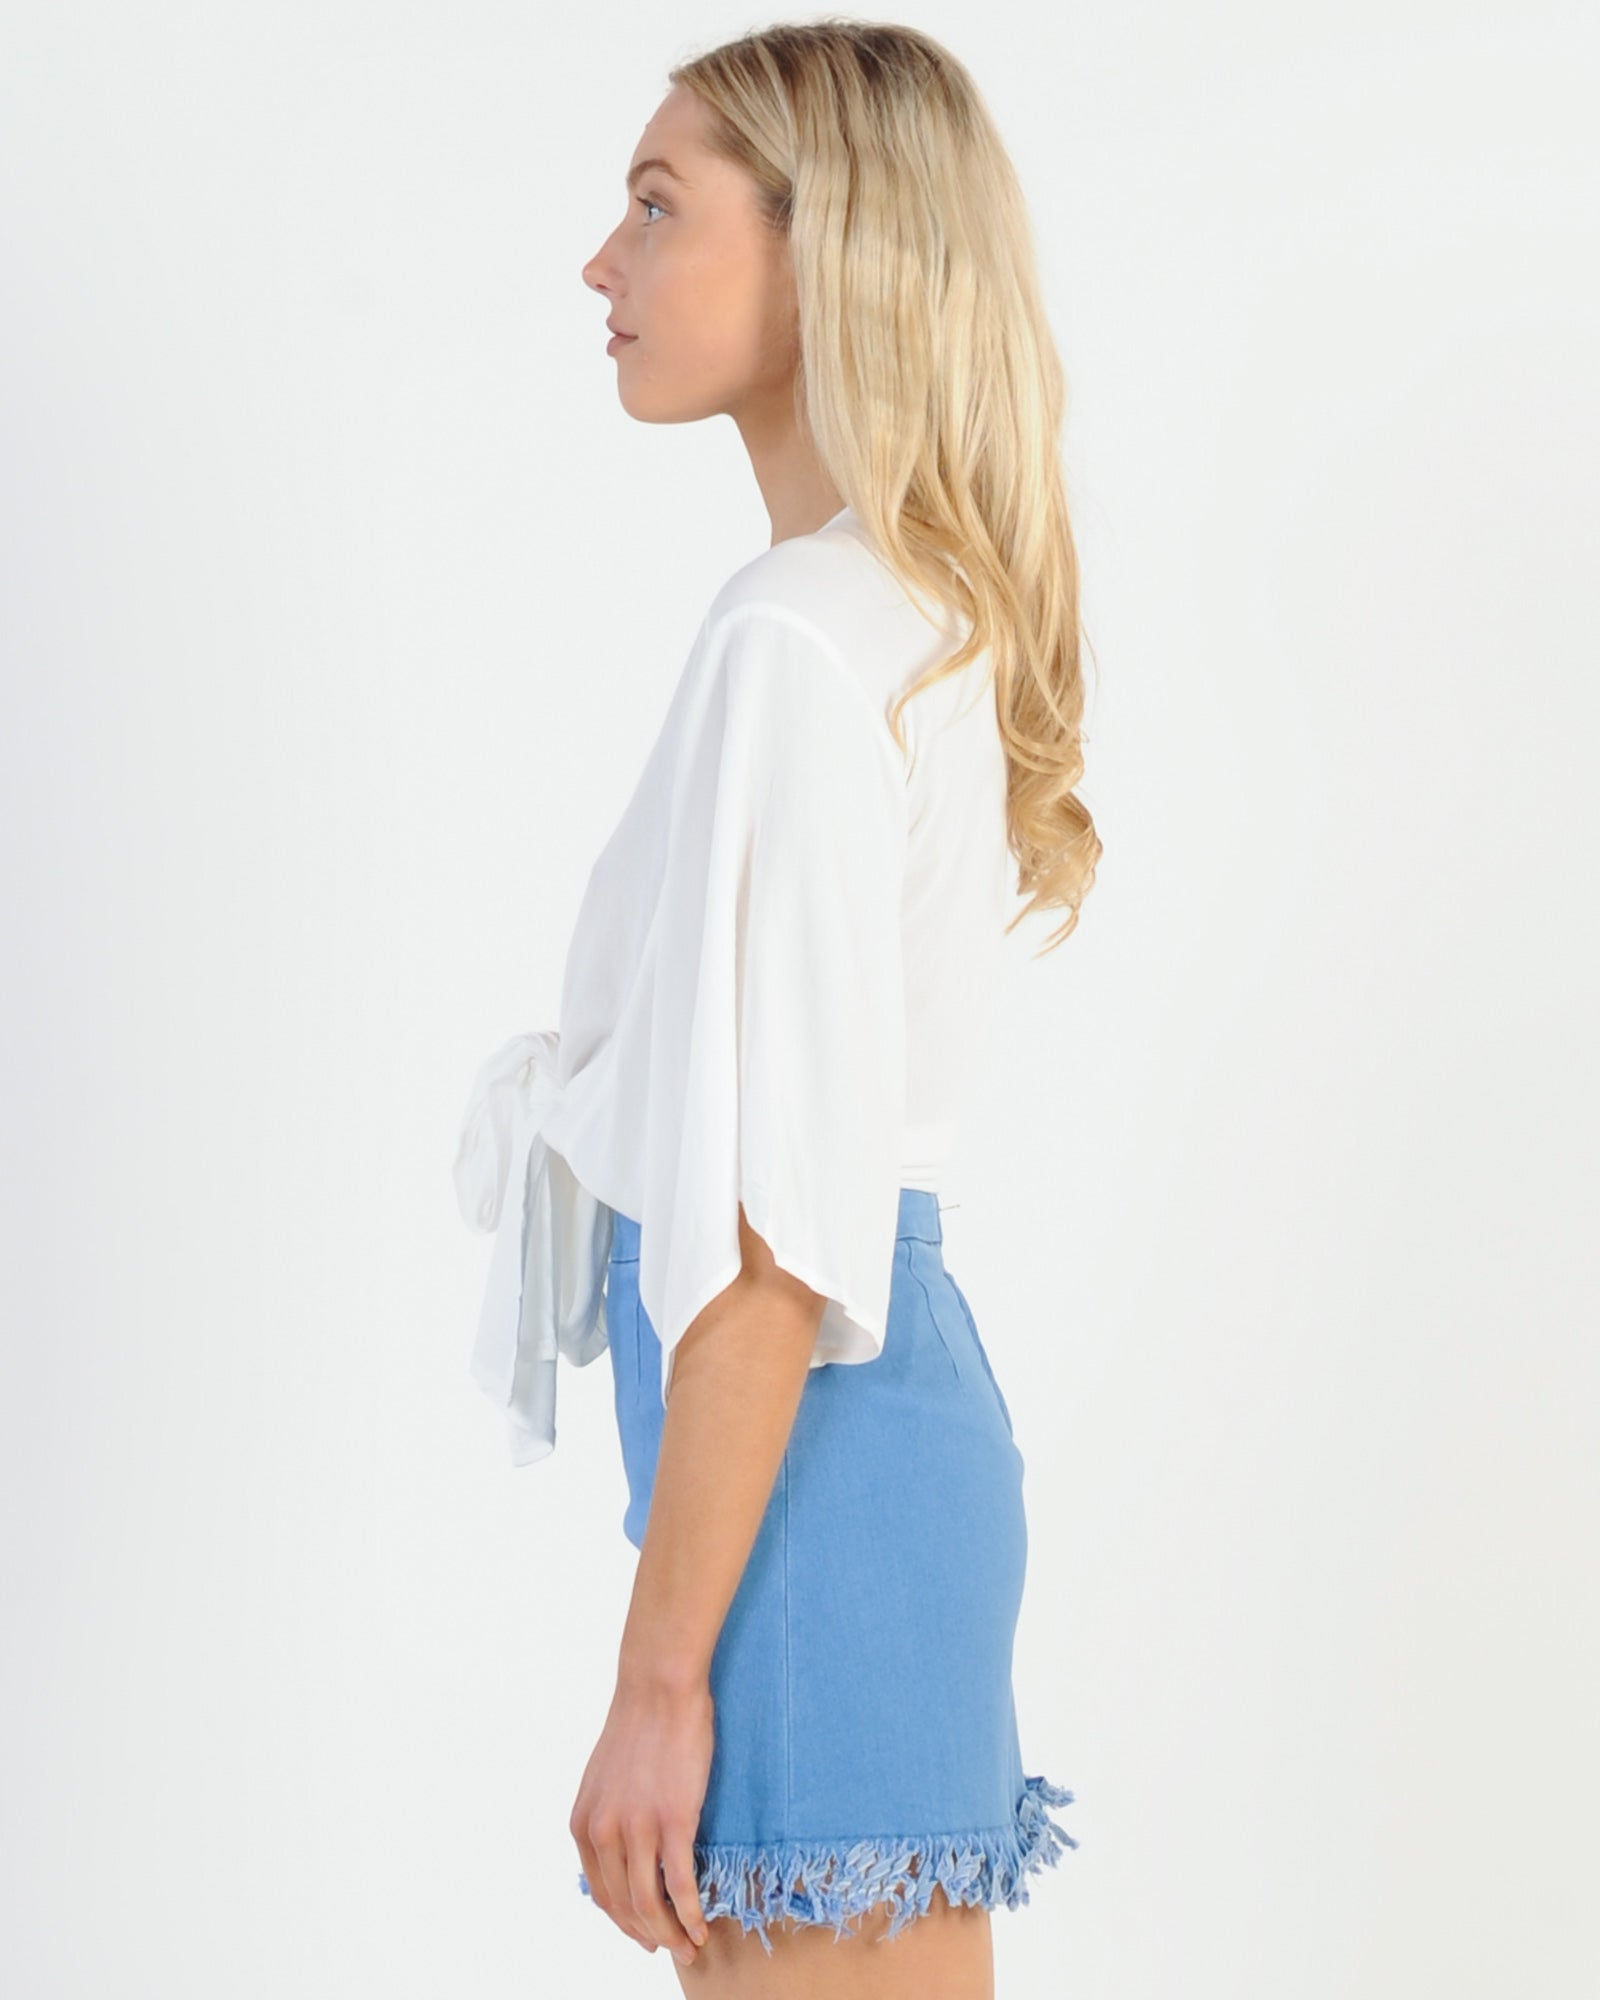 Story Of A Girl Skirt - Blue